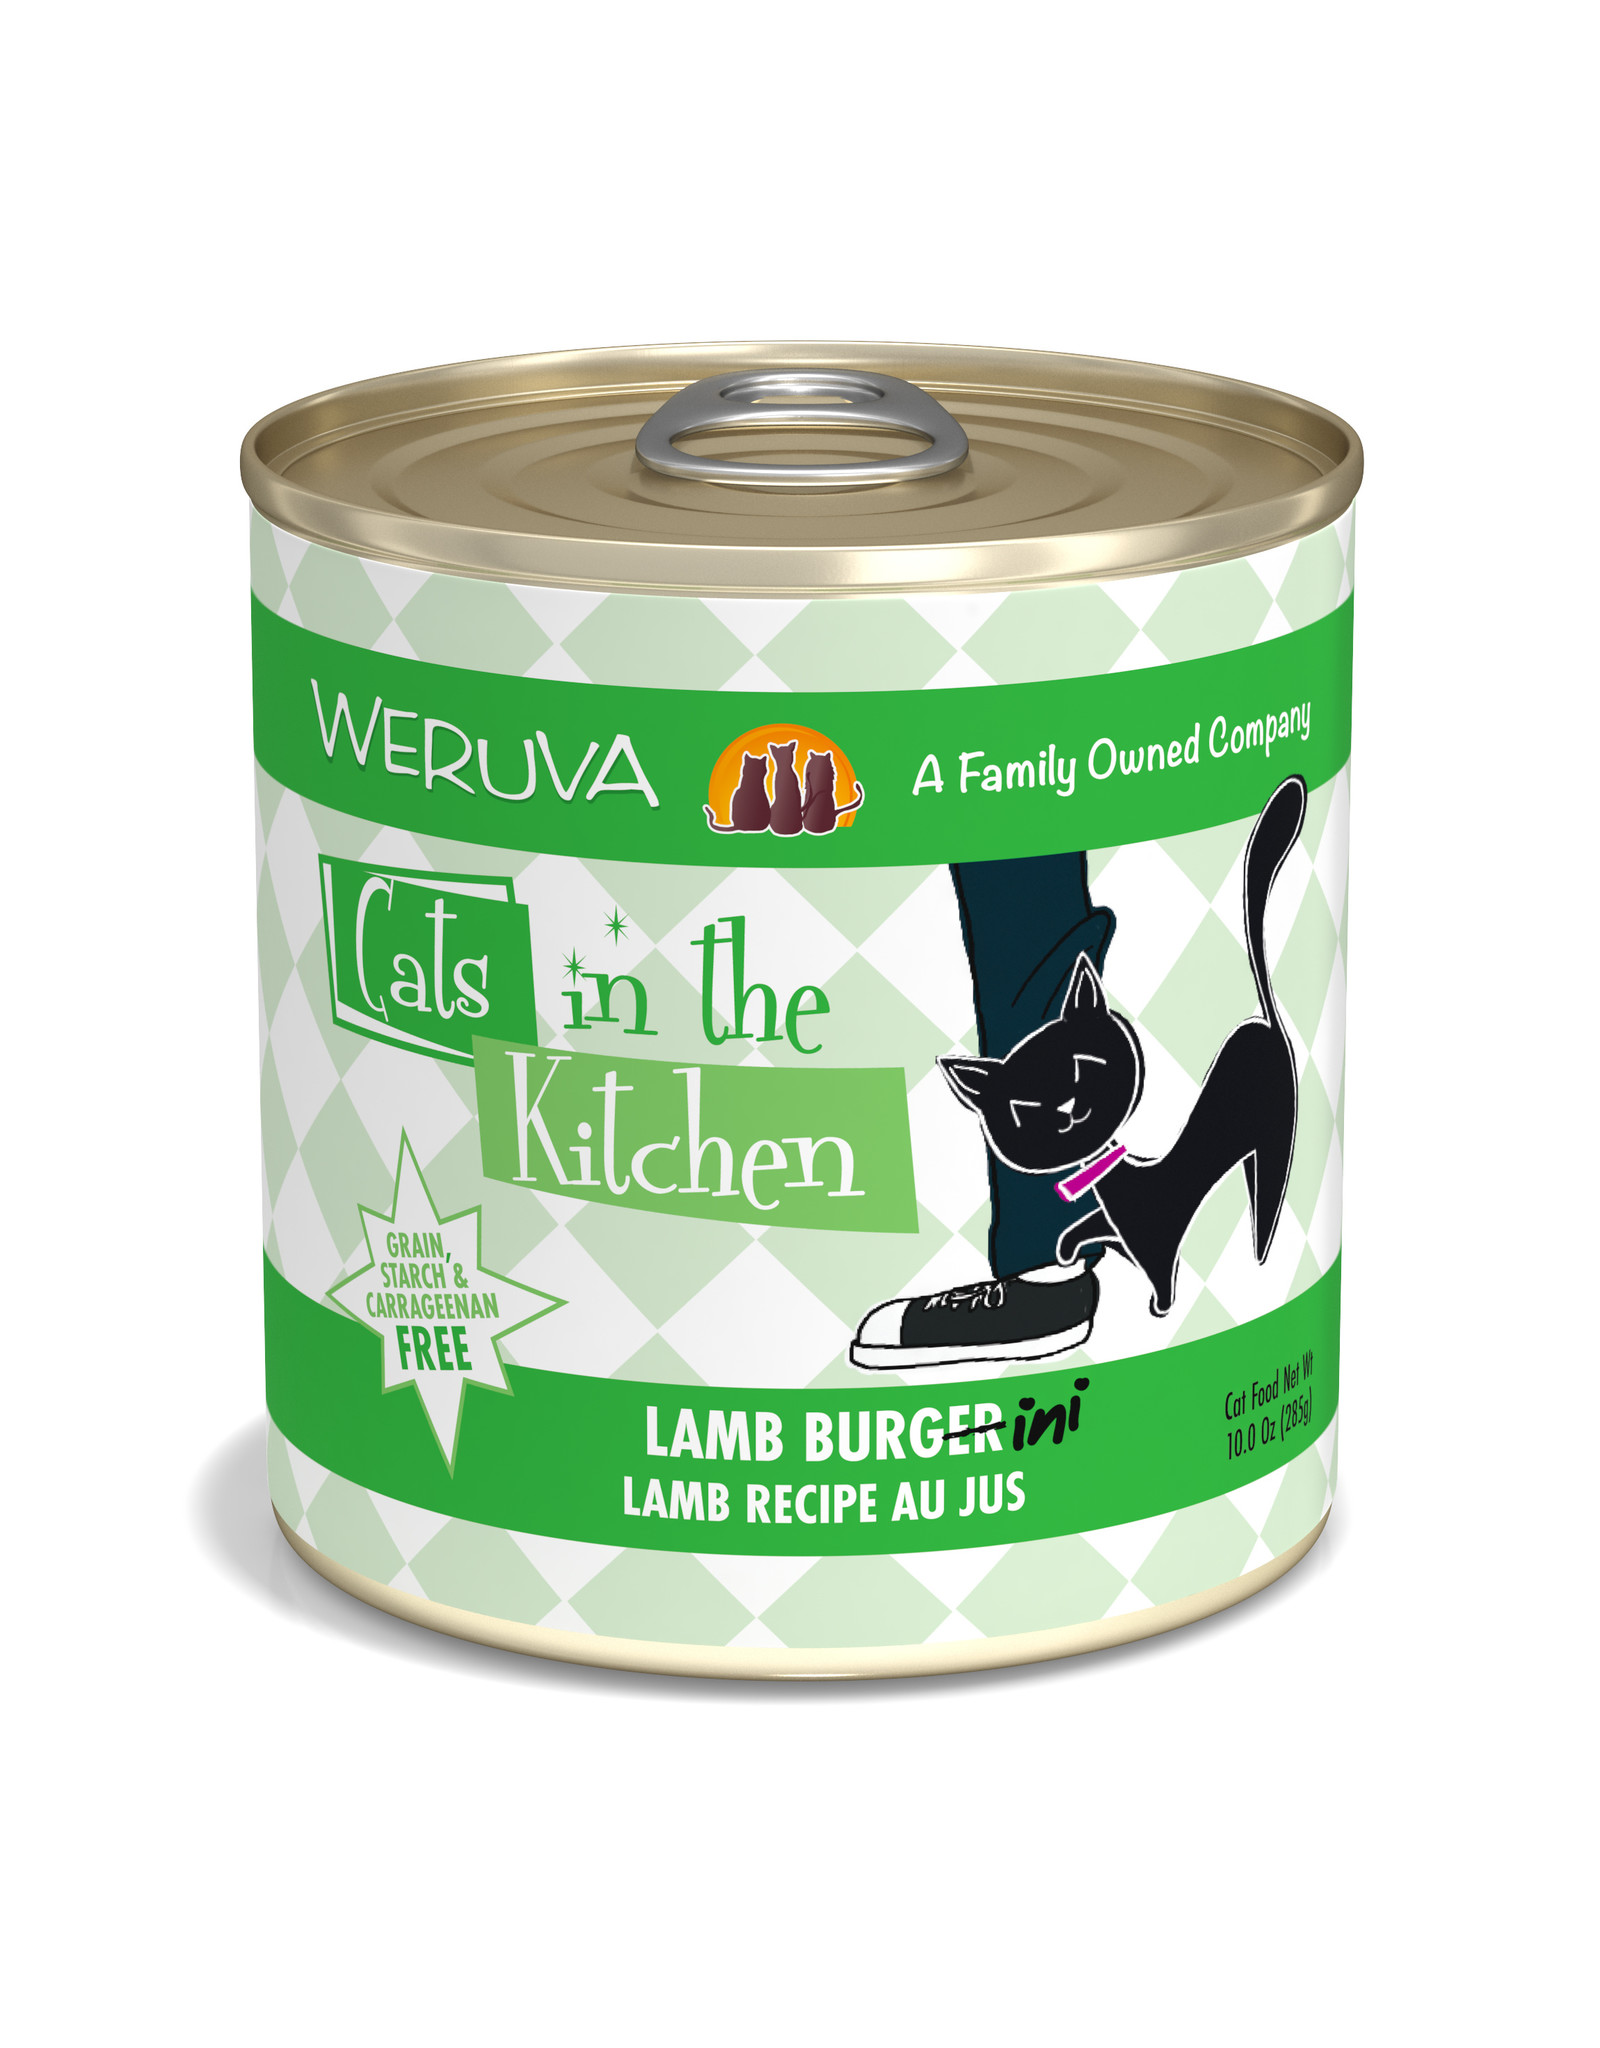 Weruva WERUVA CAT CATS IN THE KITCHEN LAMB BURGER-INI LAMB RECIPE AU JUS